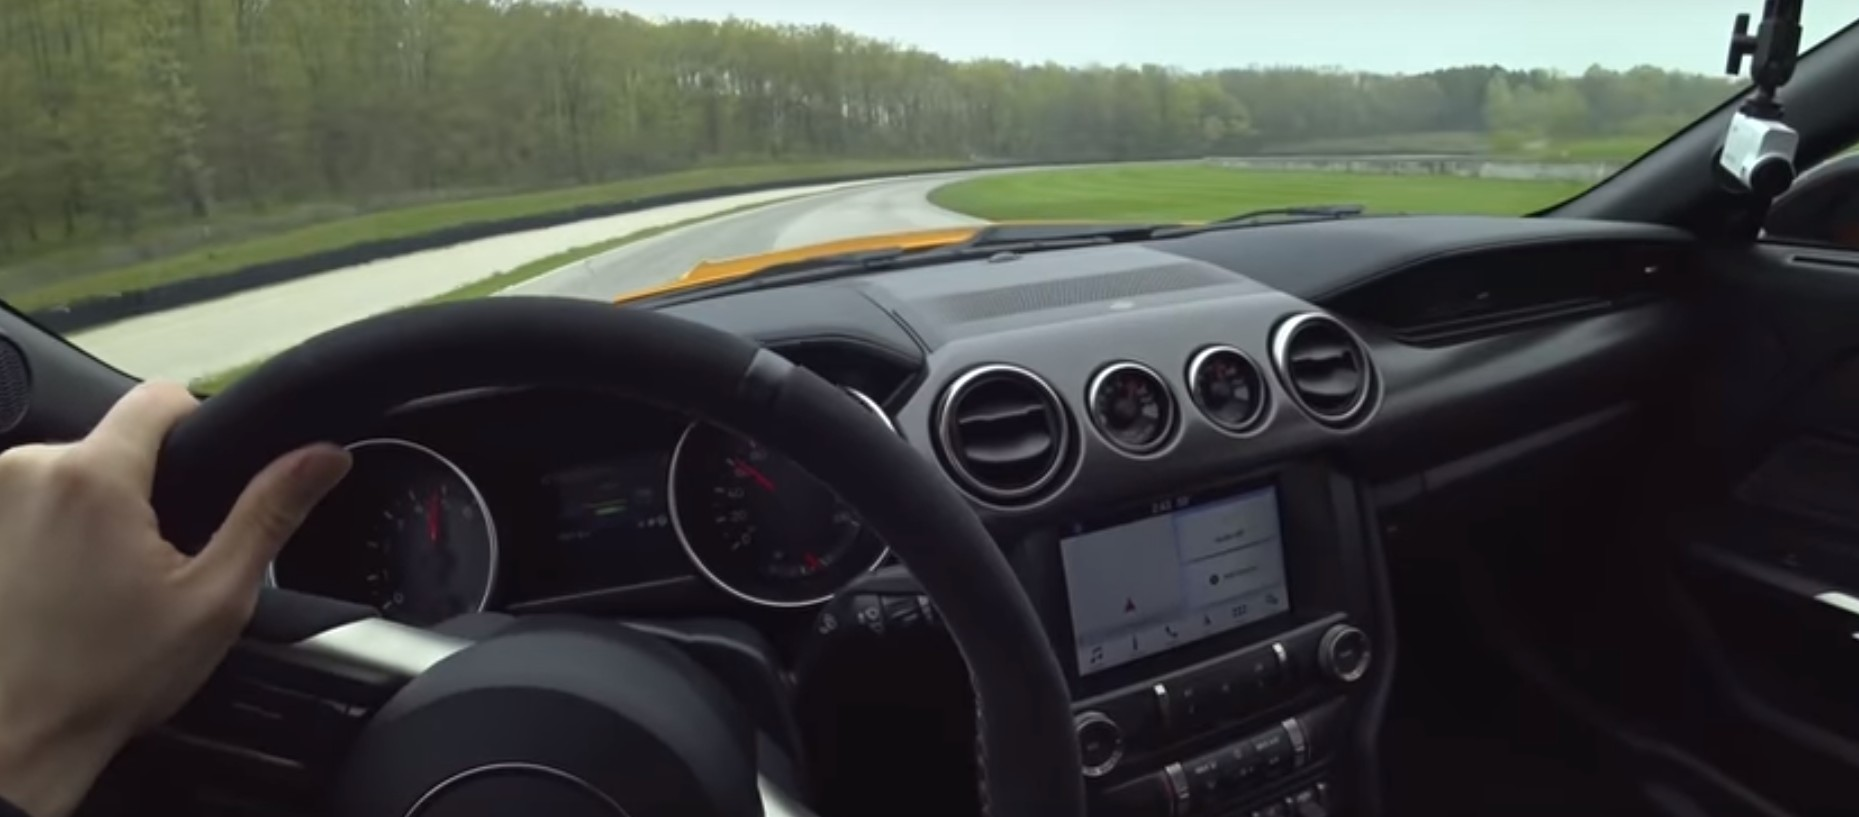 2019-ford-mustang-shelby-gt350-pov-track-drive-winding-road.jpg